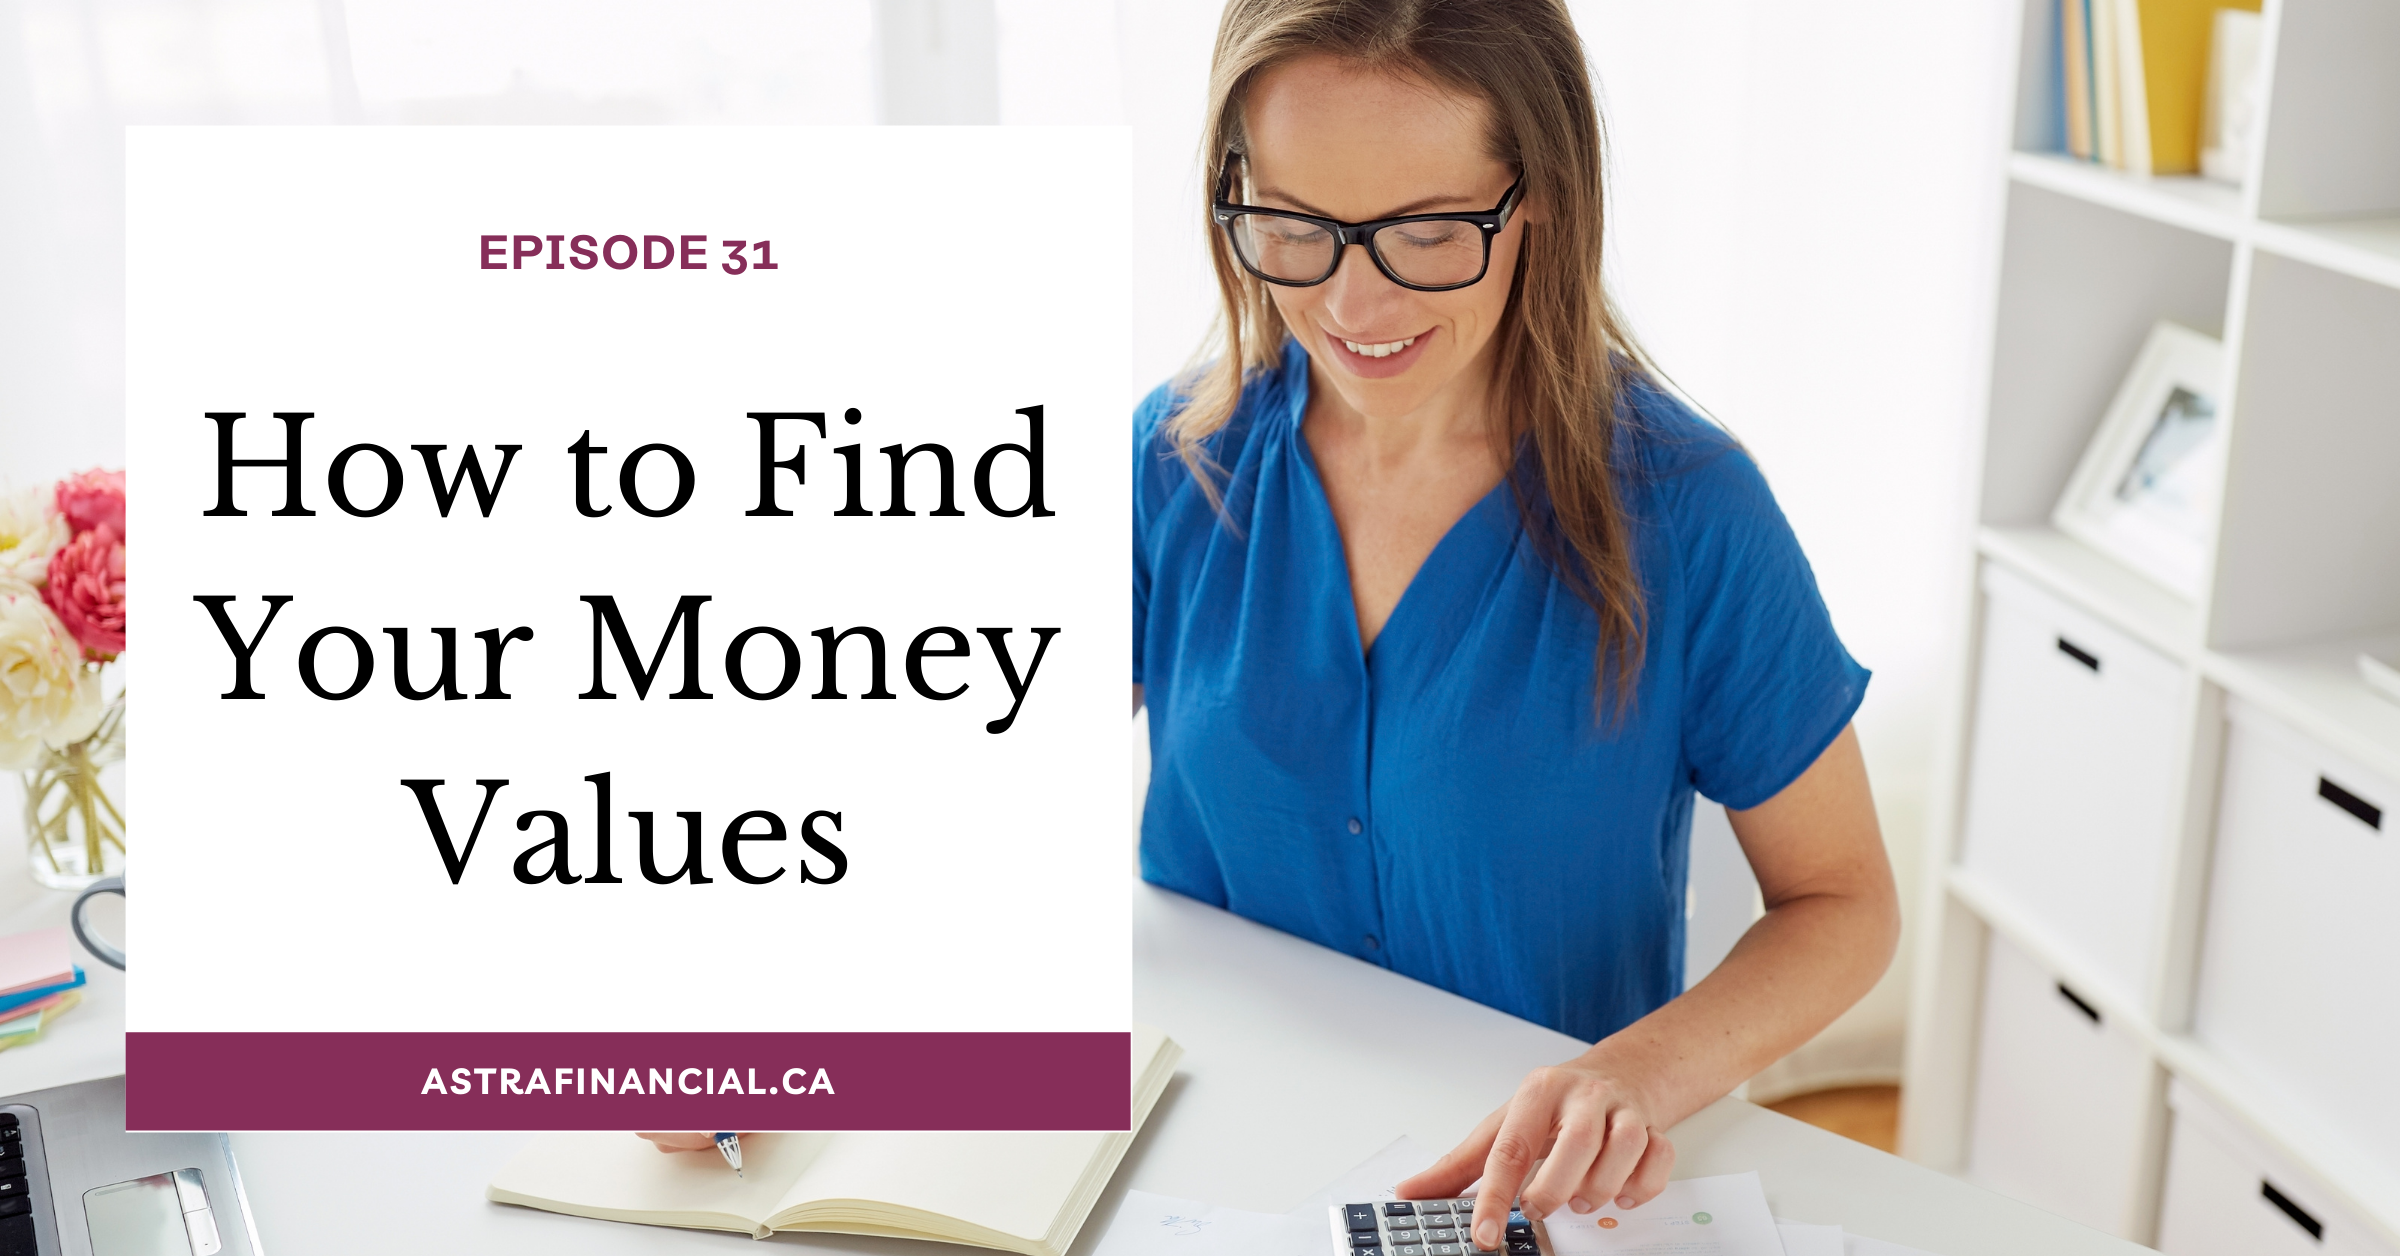 Episode 31- How to Find Your Money Values by Astra Financial